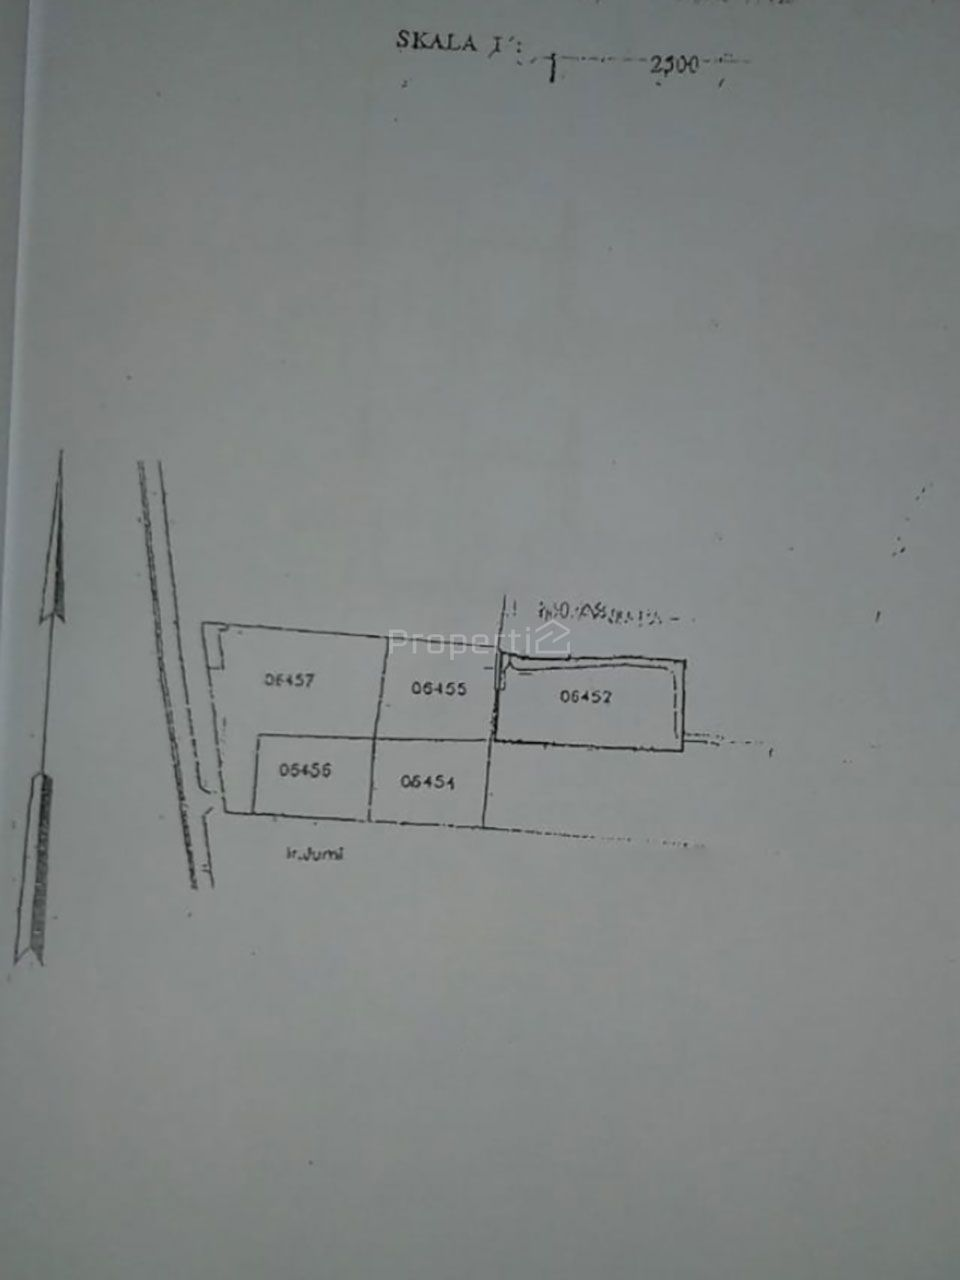 Commercial Land 2.8 Ha in Cakung, Cakung